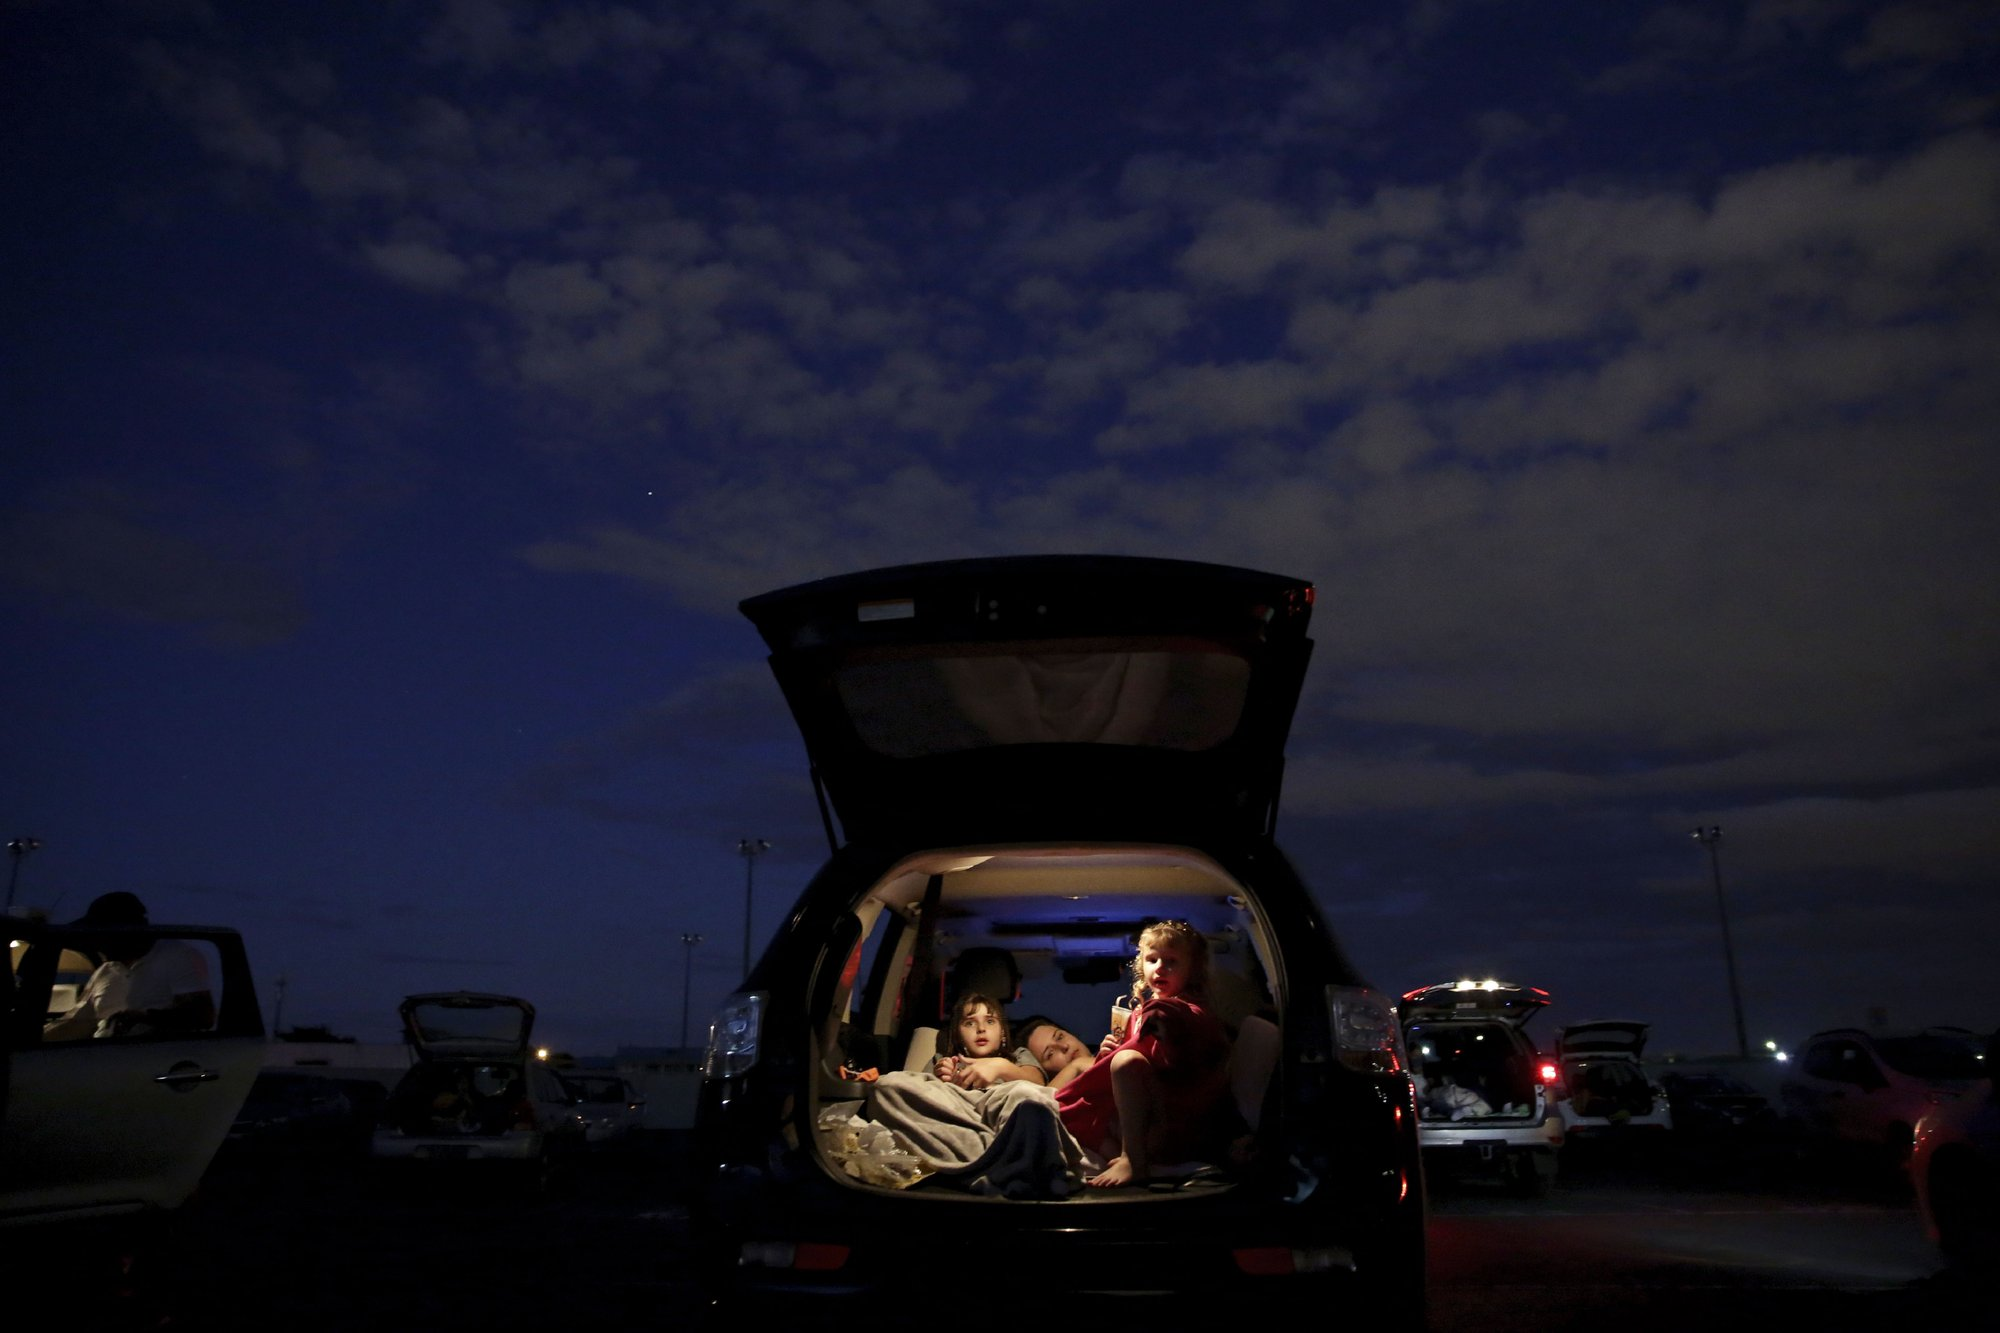 Brazilians escape the horrors of the virus by spending a few hours at the drive-in